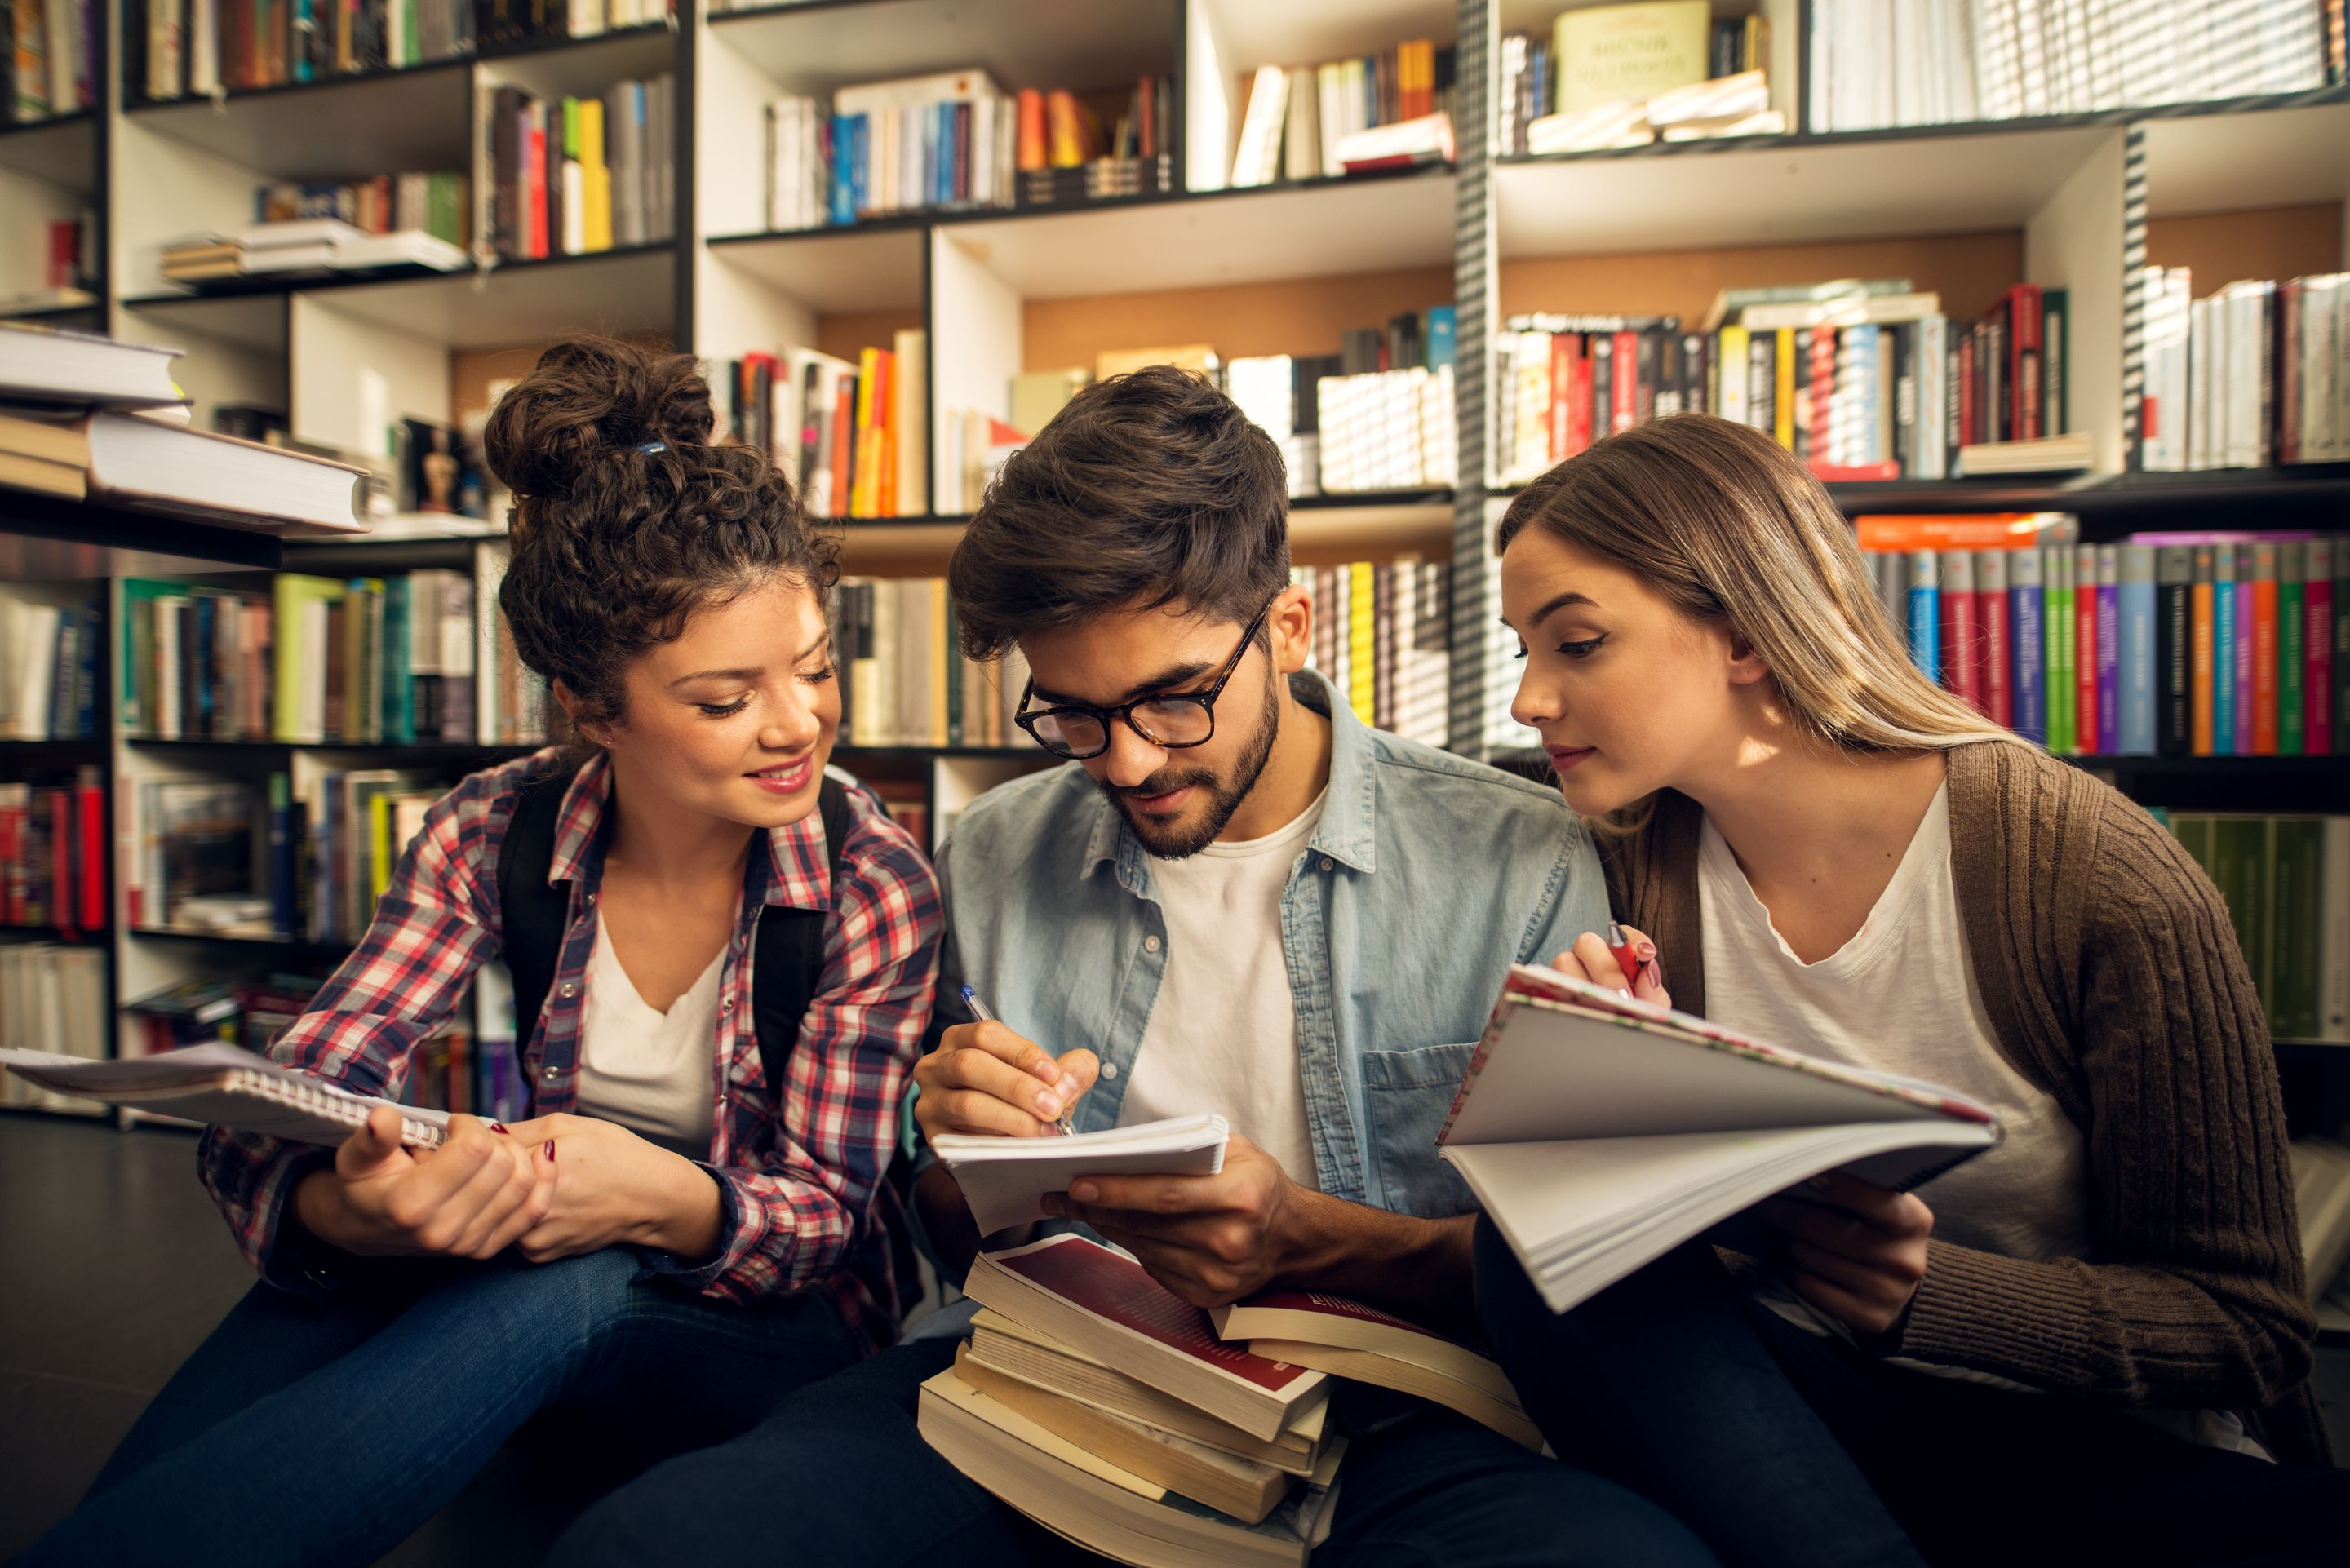 Three high school students reading and taking notes in a library